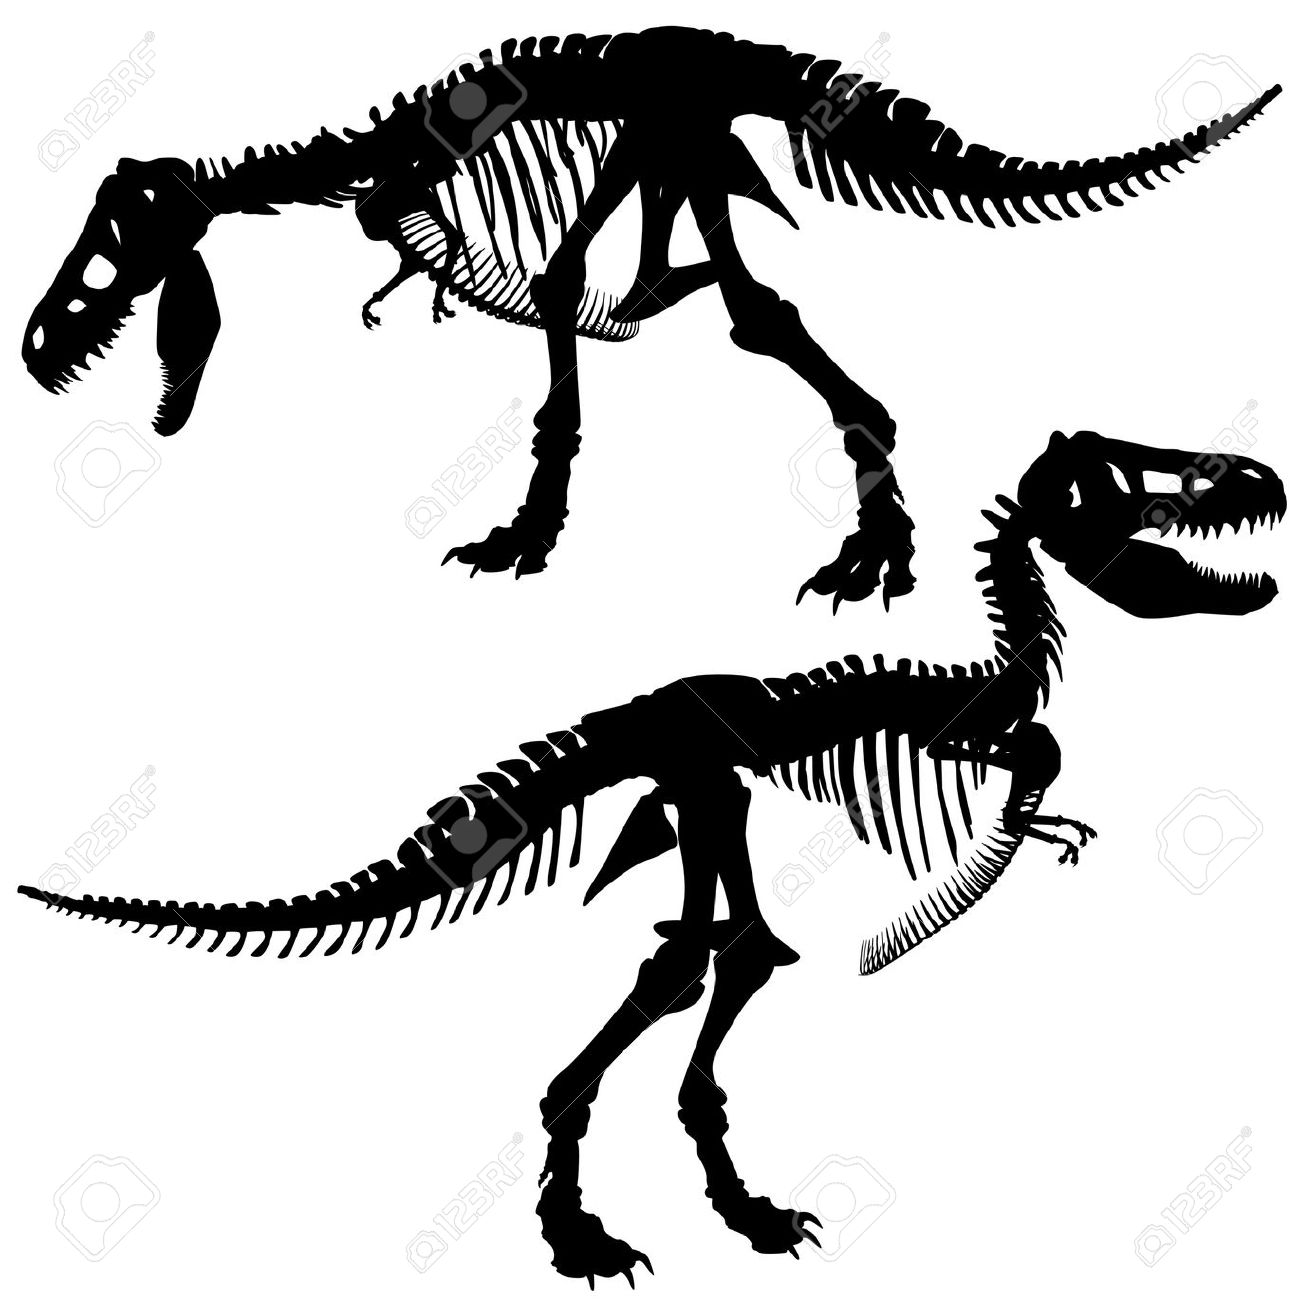 Editable Silhouettes Of The Skeleton Of A Tyrannosaurus Rex.